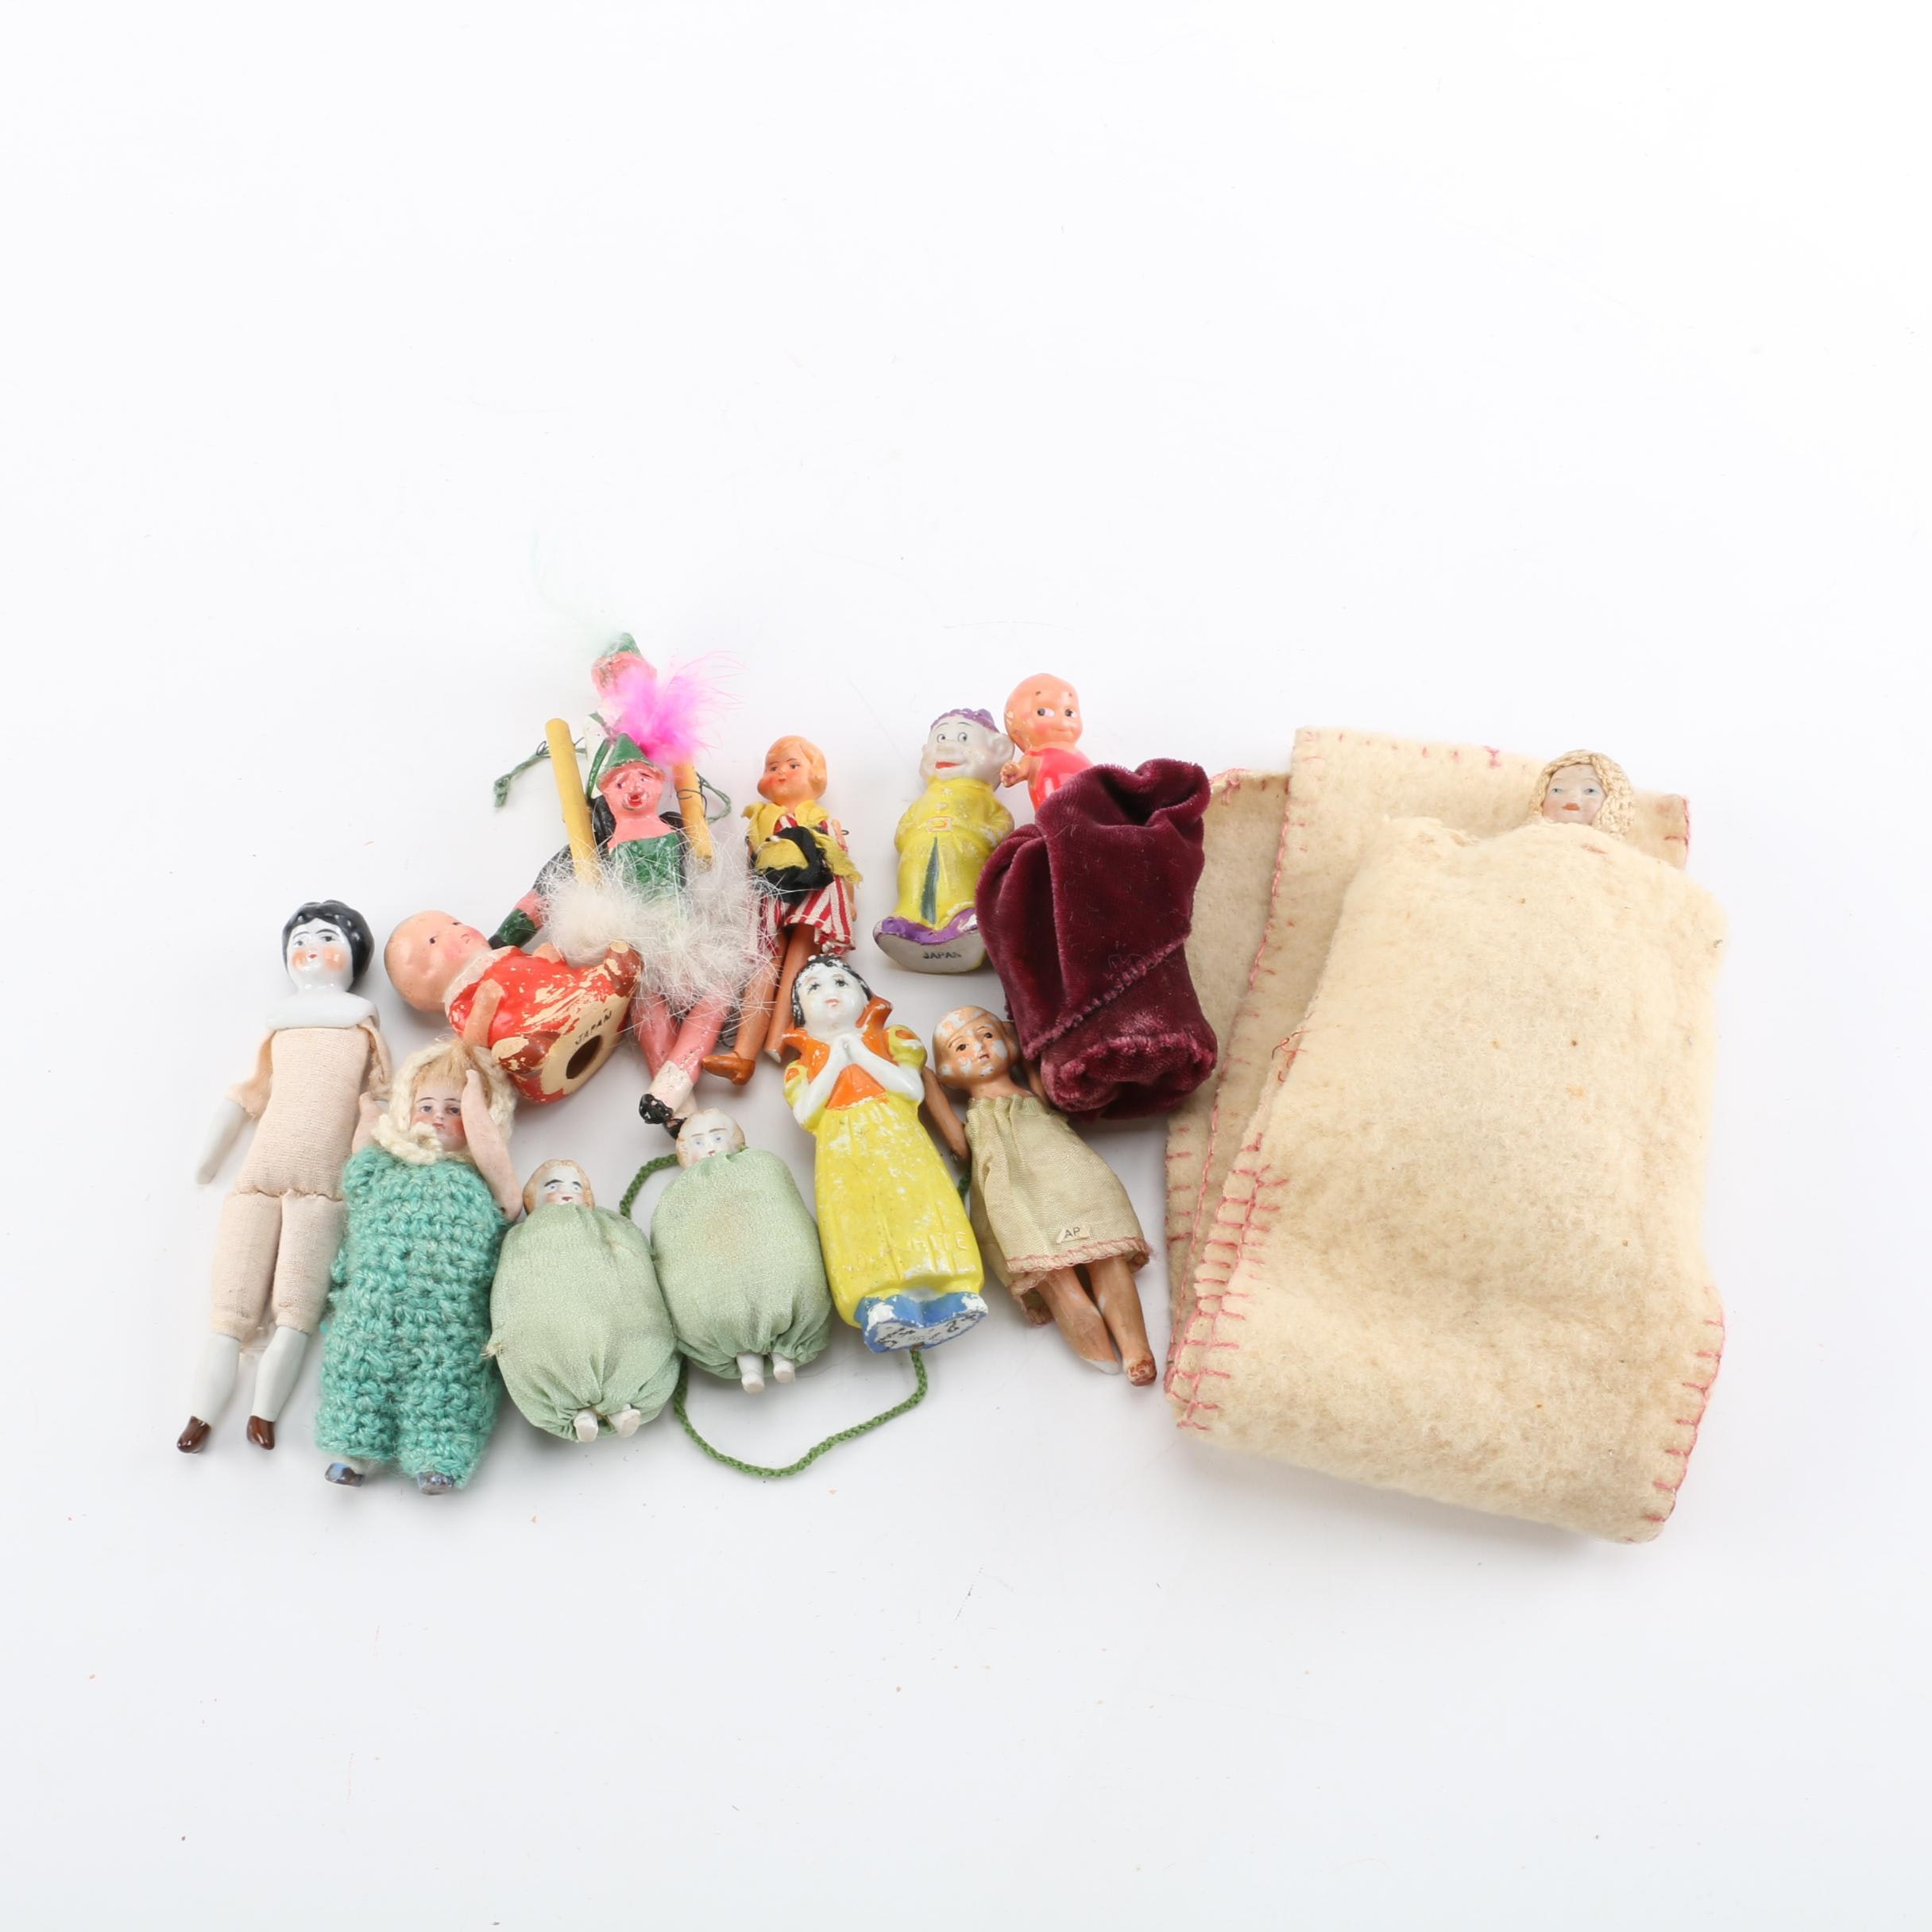 Antique and Vintage Miniature Dolls and Pin Cushions